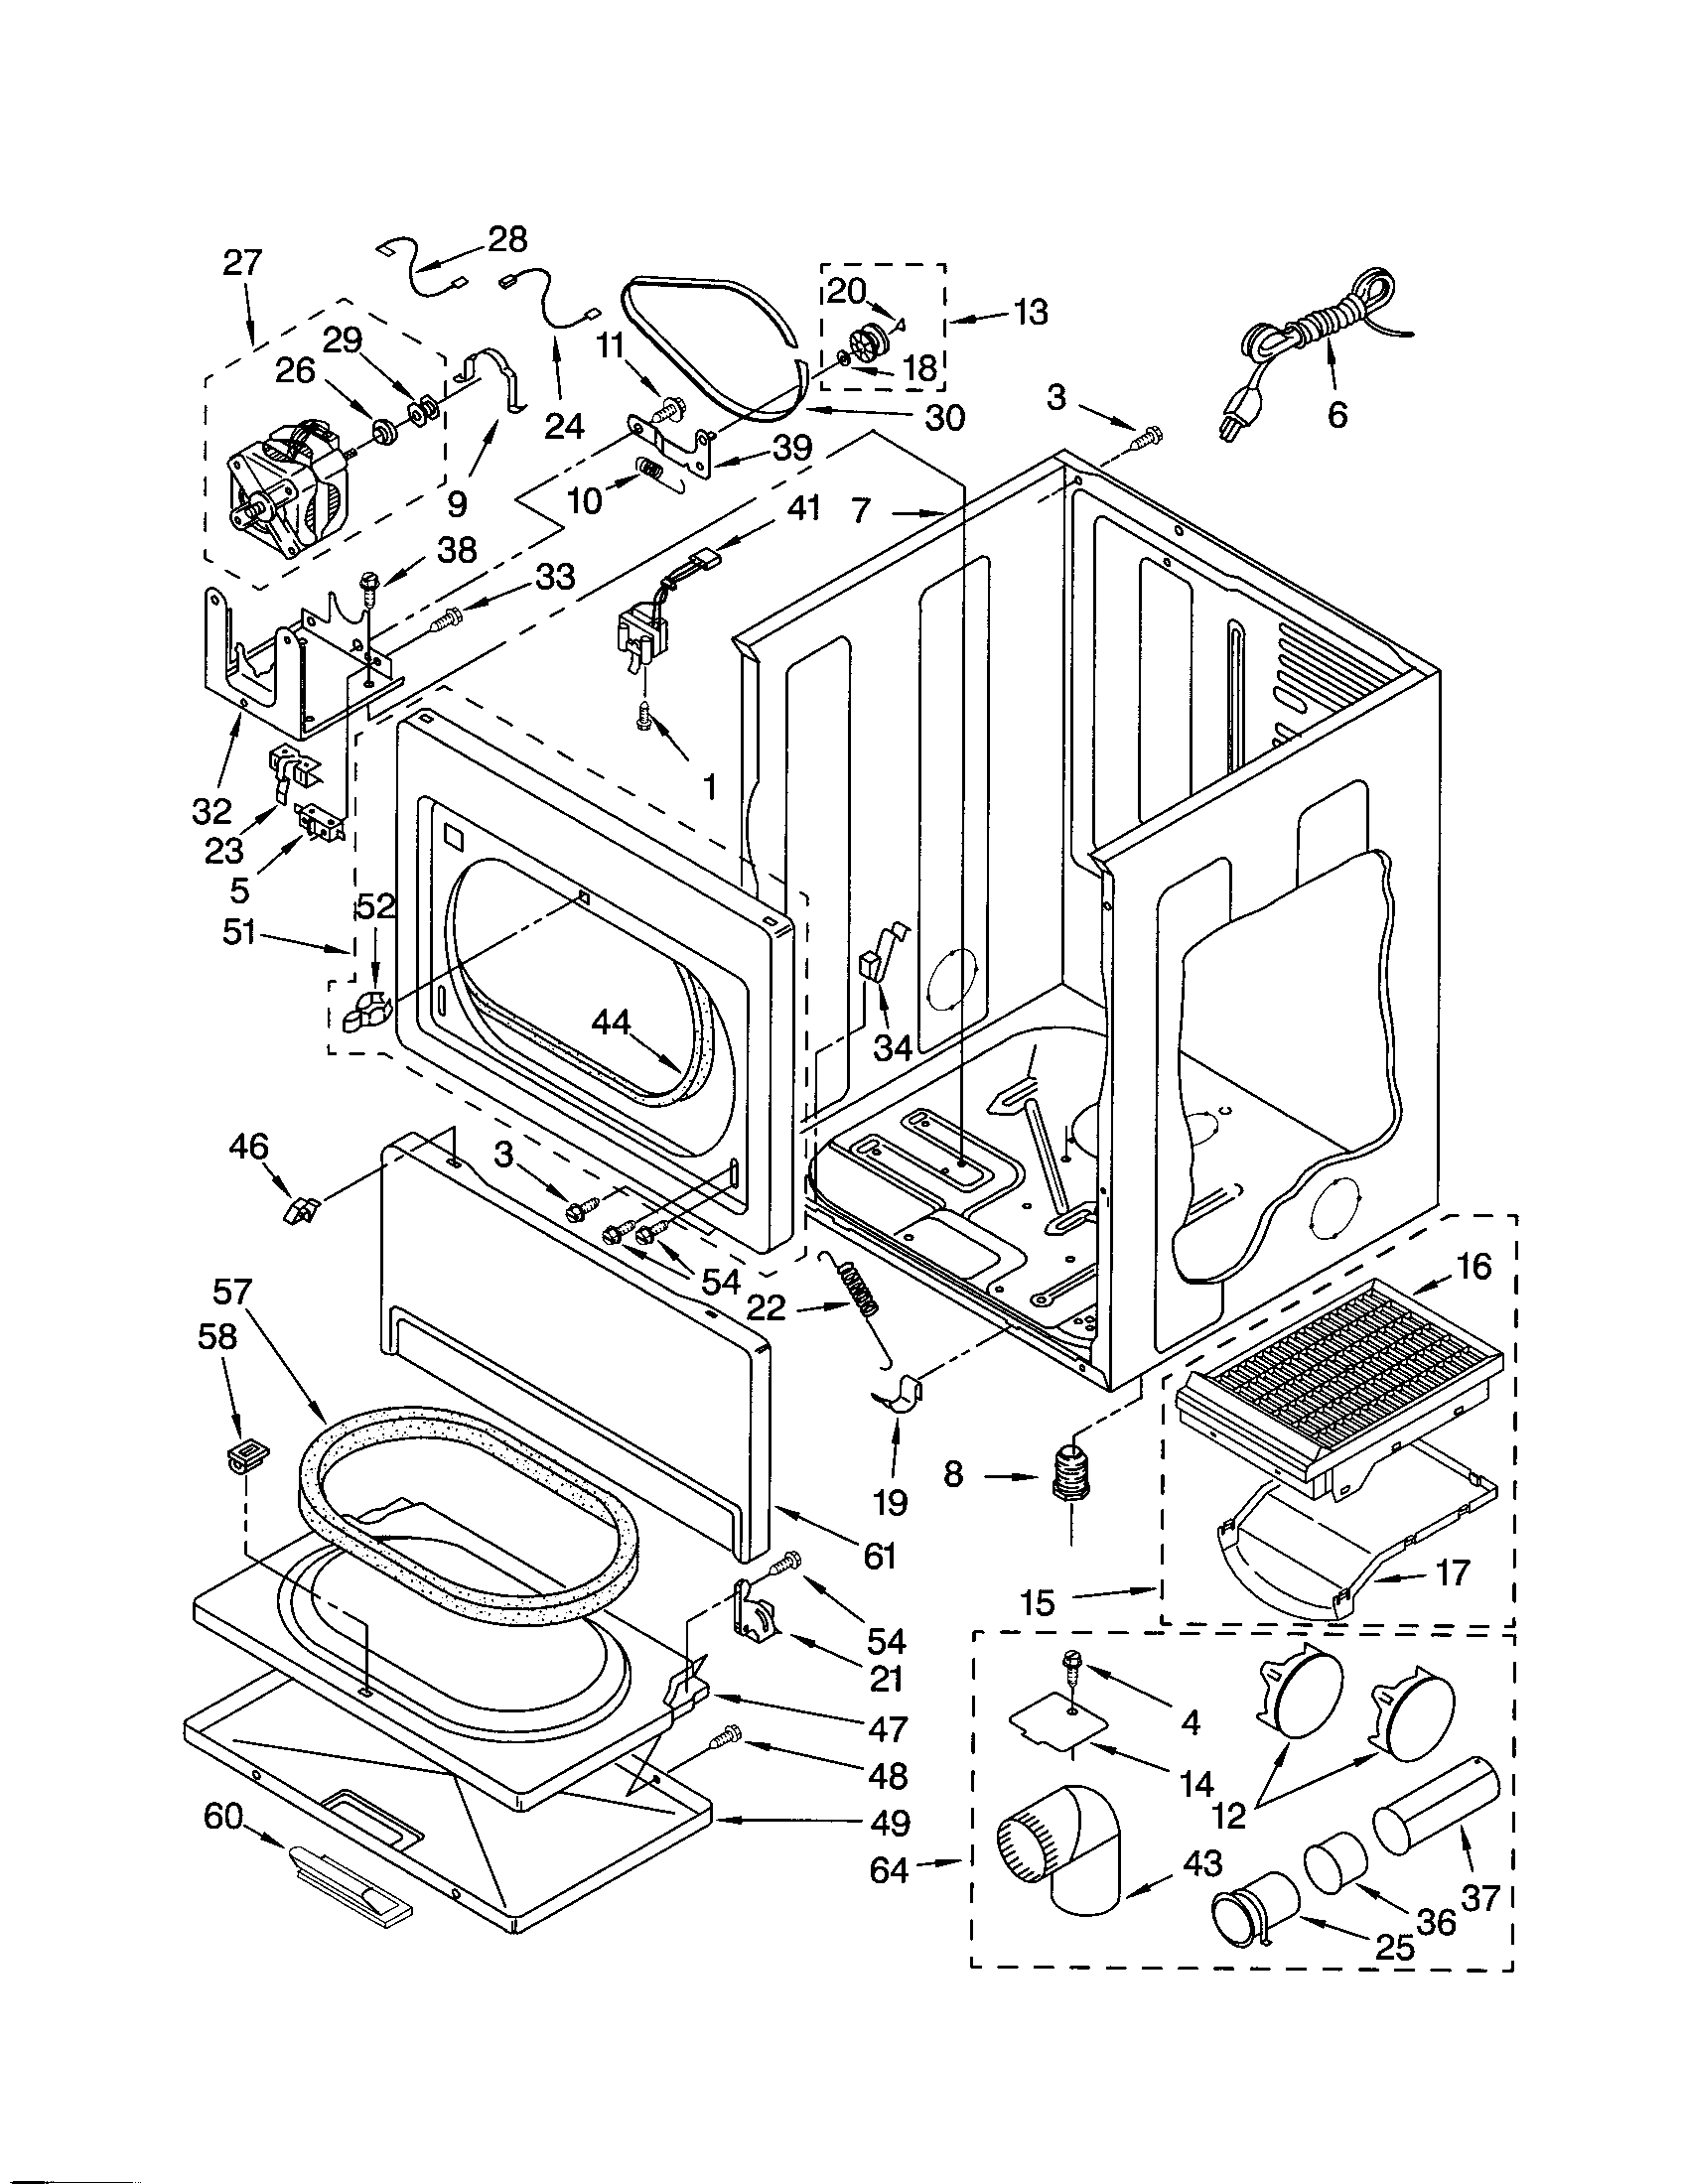 hight resolution of wiring diagram for kenmore heating element 3387747 wiring diagrams wiring diagram for kenmore heating element 3387747